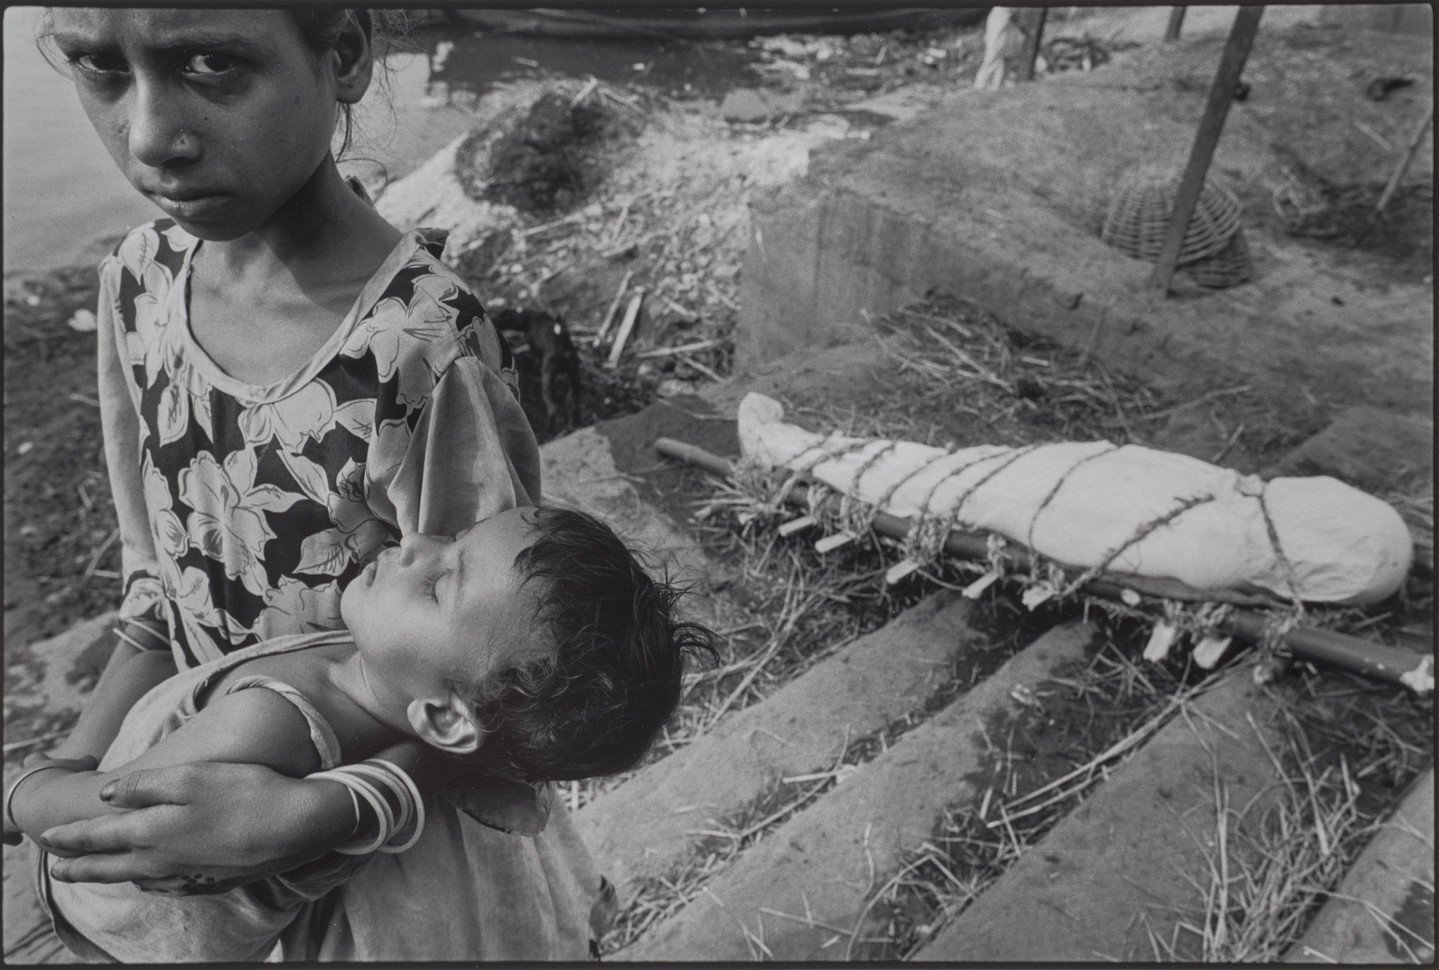 A black-and-white photograph of a child with medium skin tone carries a sleeping baby and stares into the camera with a distraught look on her face. In the background, a dead body is wrapped in white cloth and tied to a makeshift stretcher.